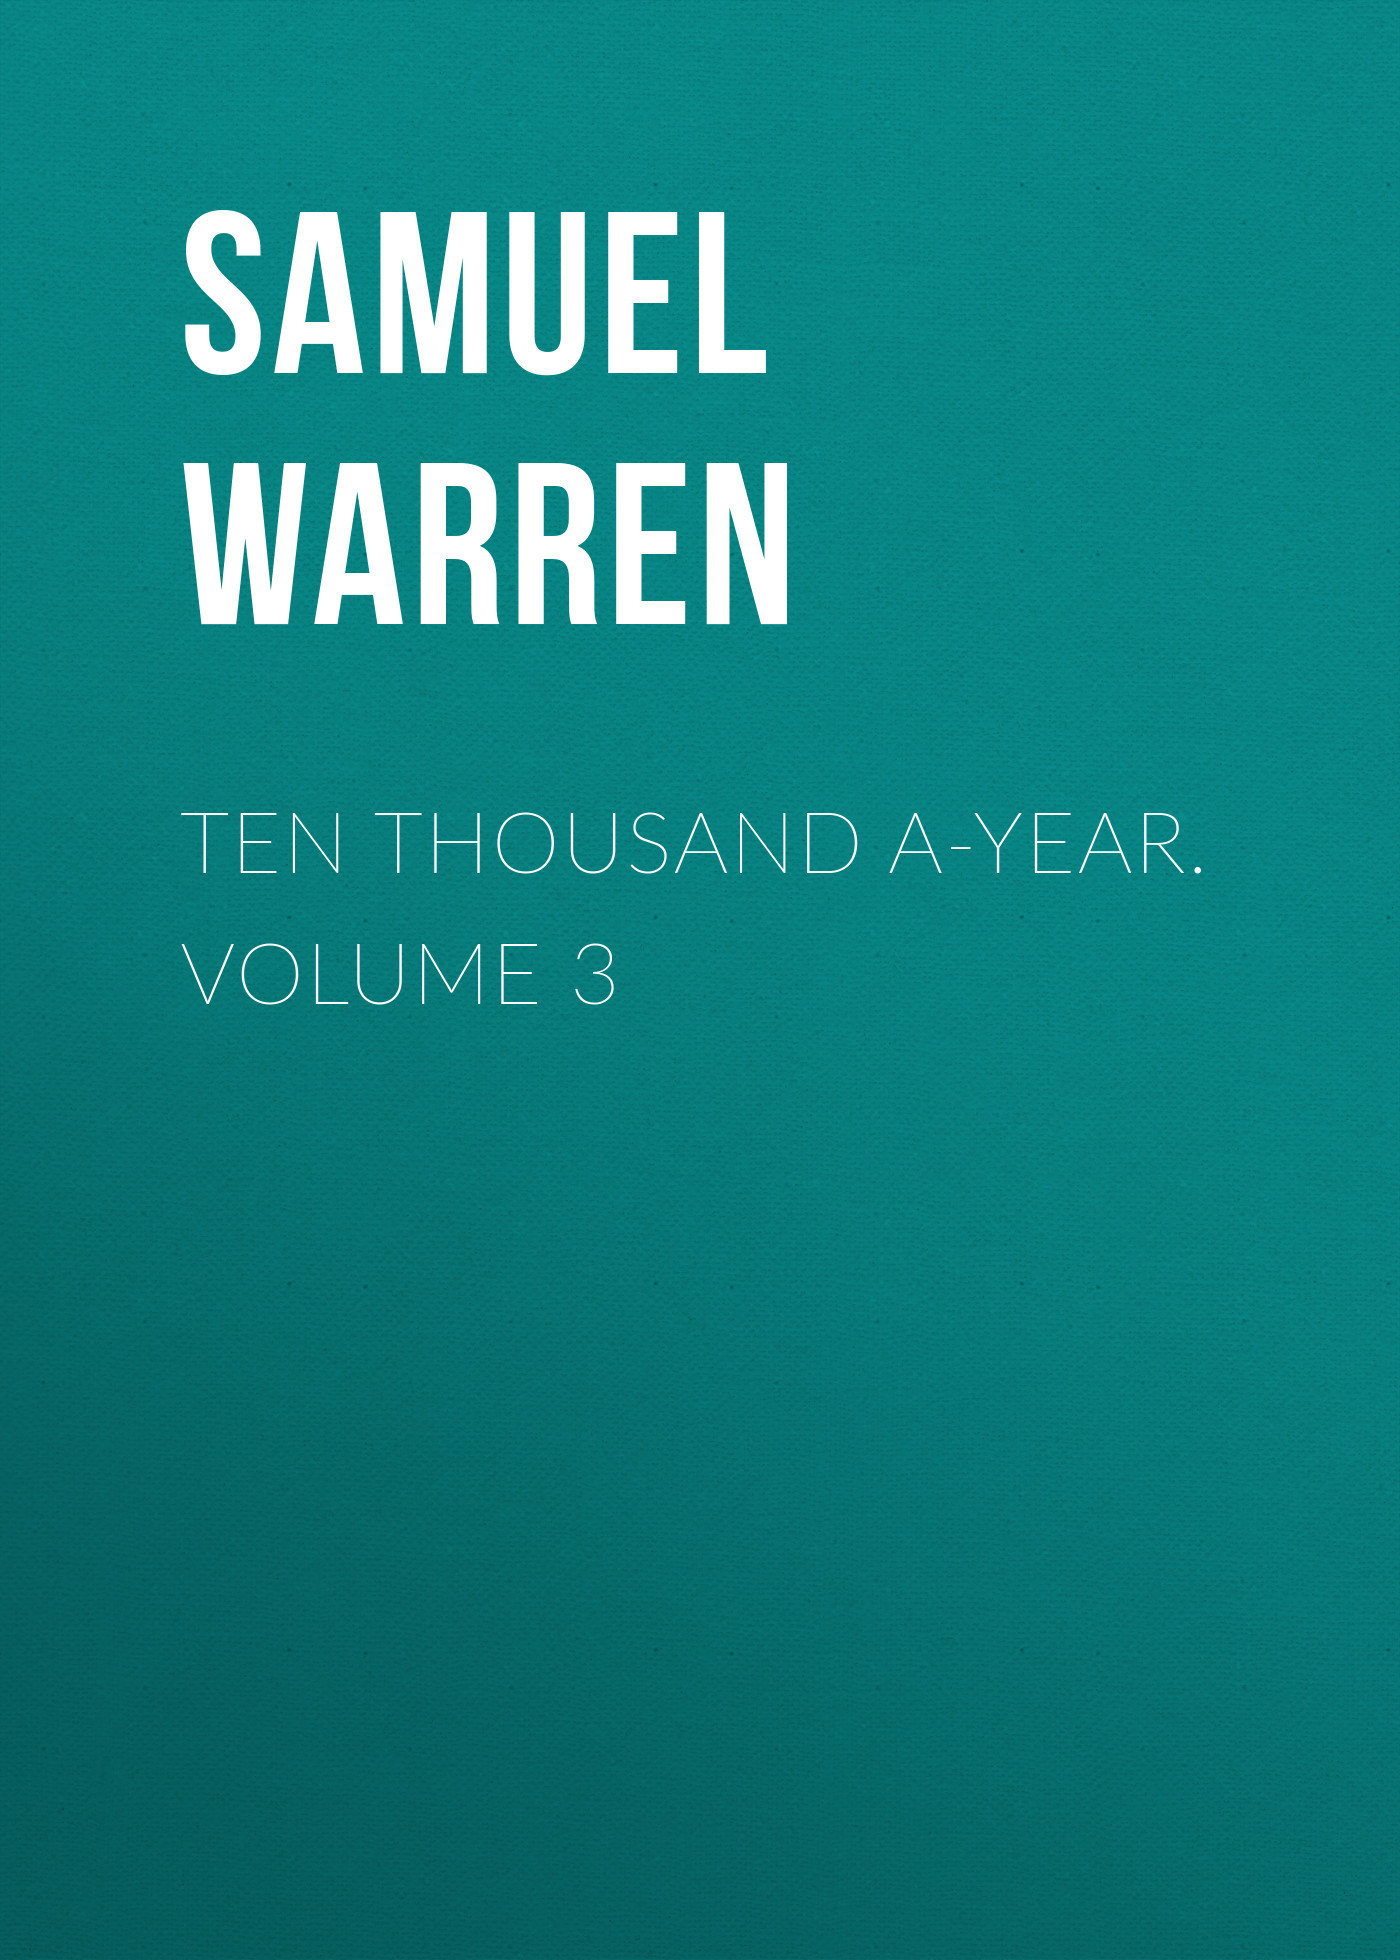 Samuel Warren Ten Thousand a-Year. Volume 3